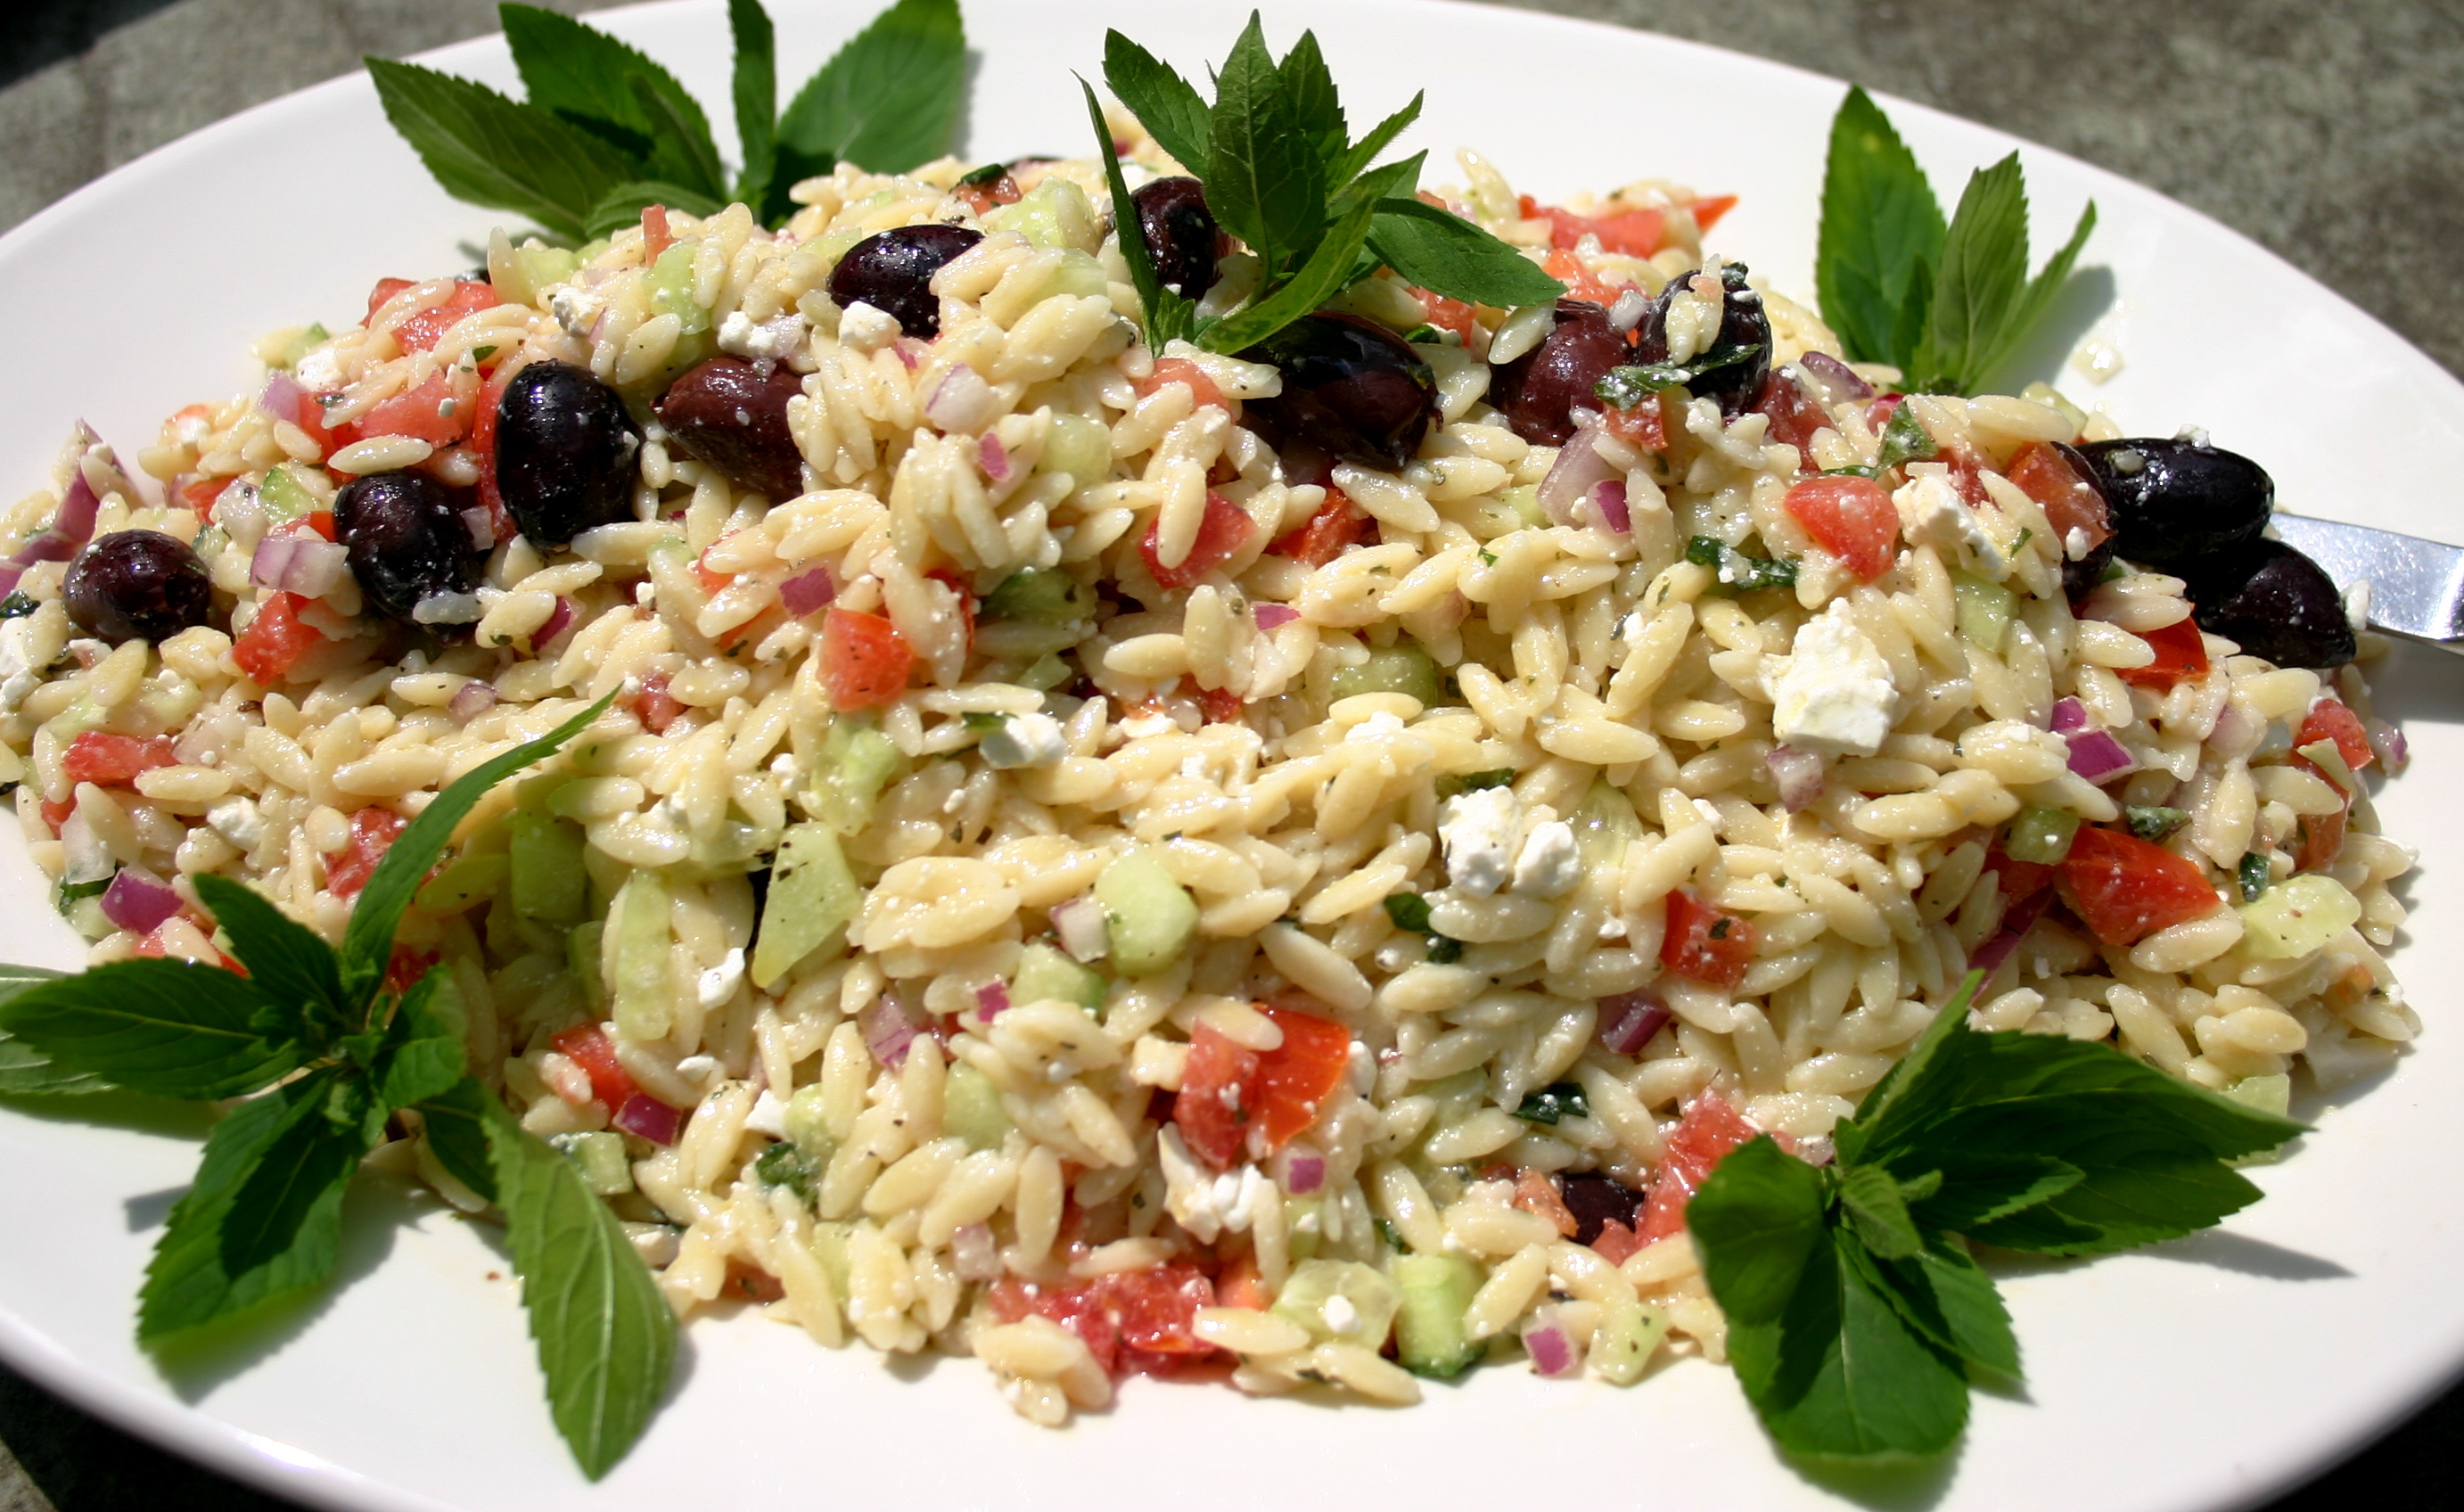 Chilled Orzo Pasta Salad with Summer Vegetables and a Greek Seasoning